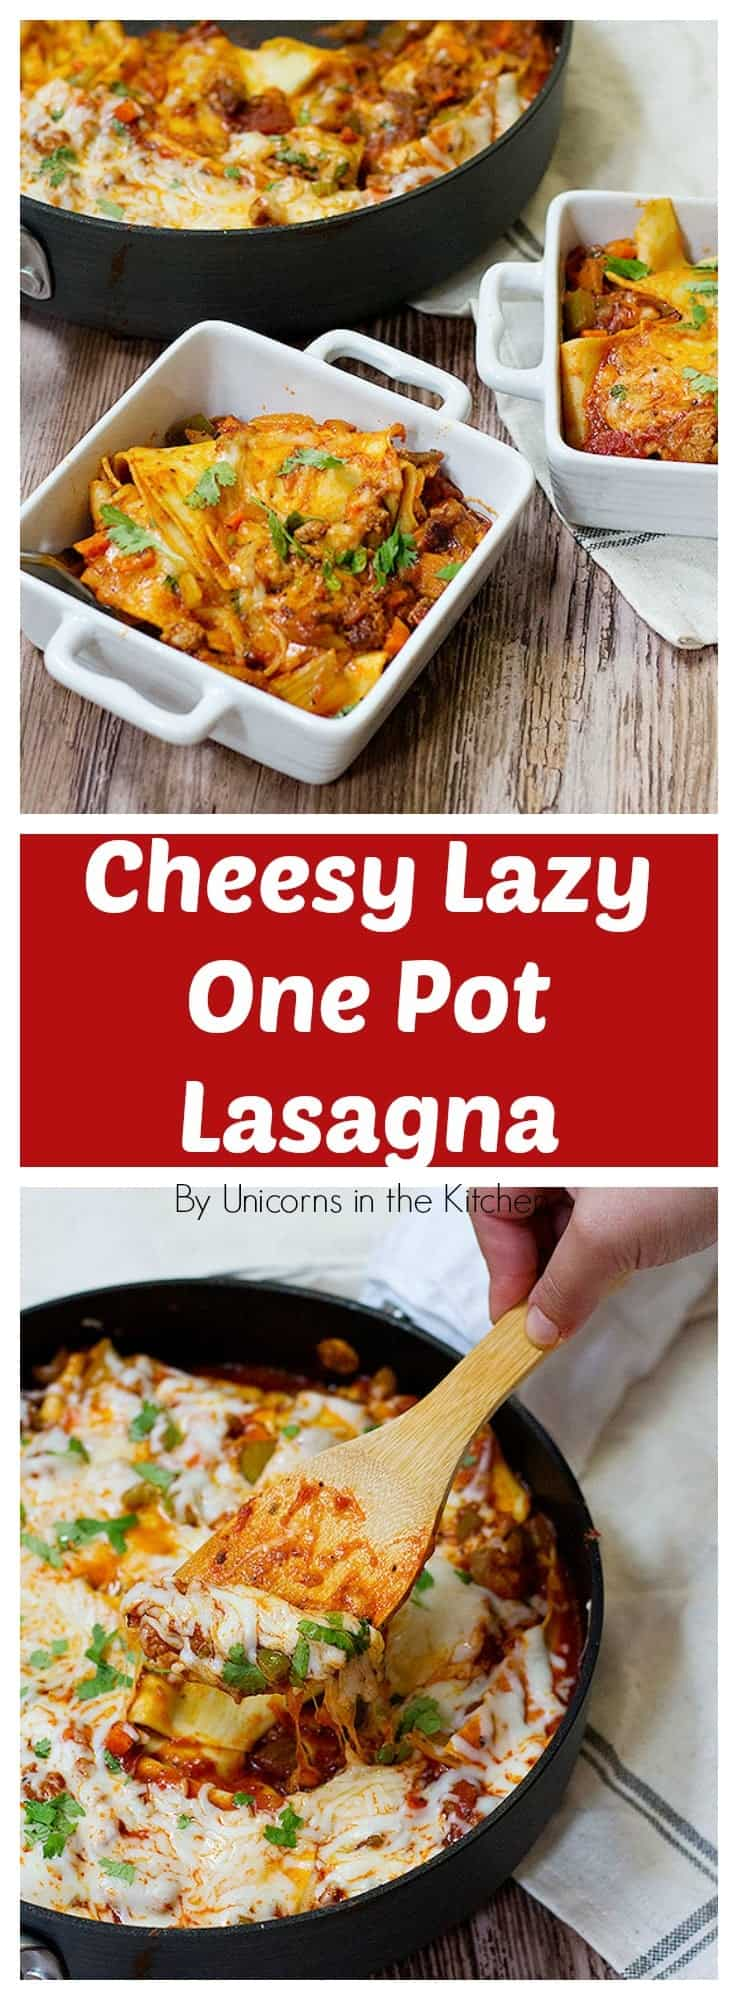 This cheesy lazy one pot lasagna is the perfect answer to